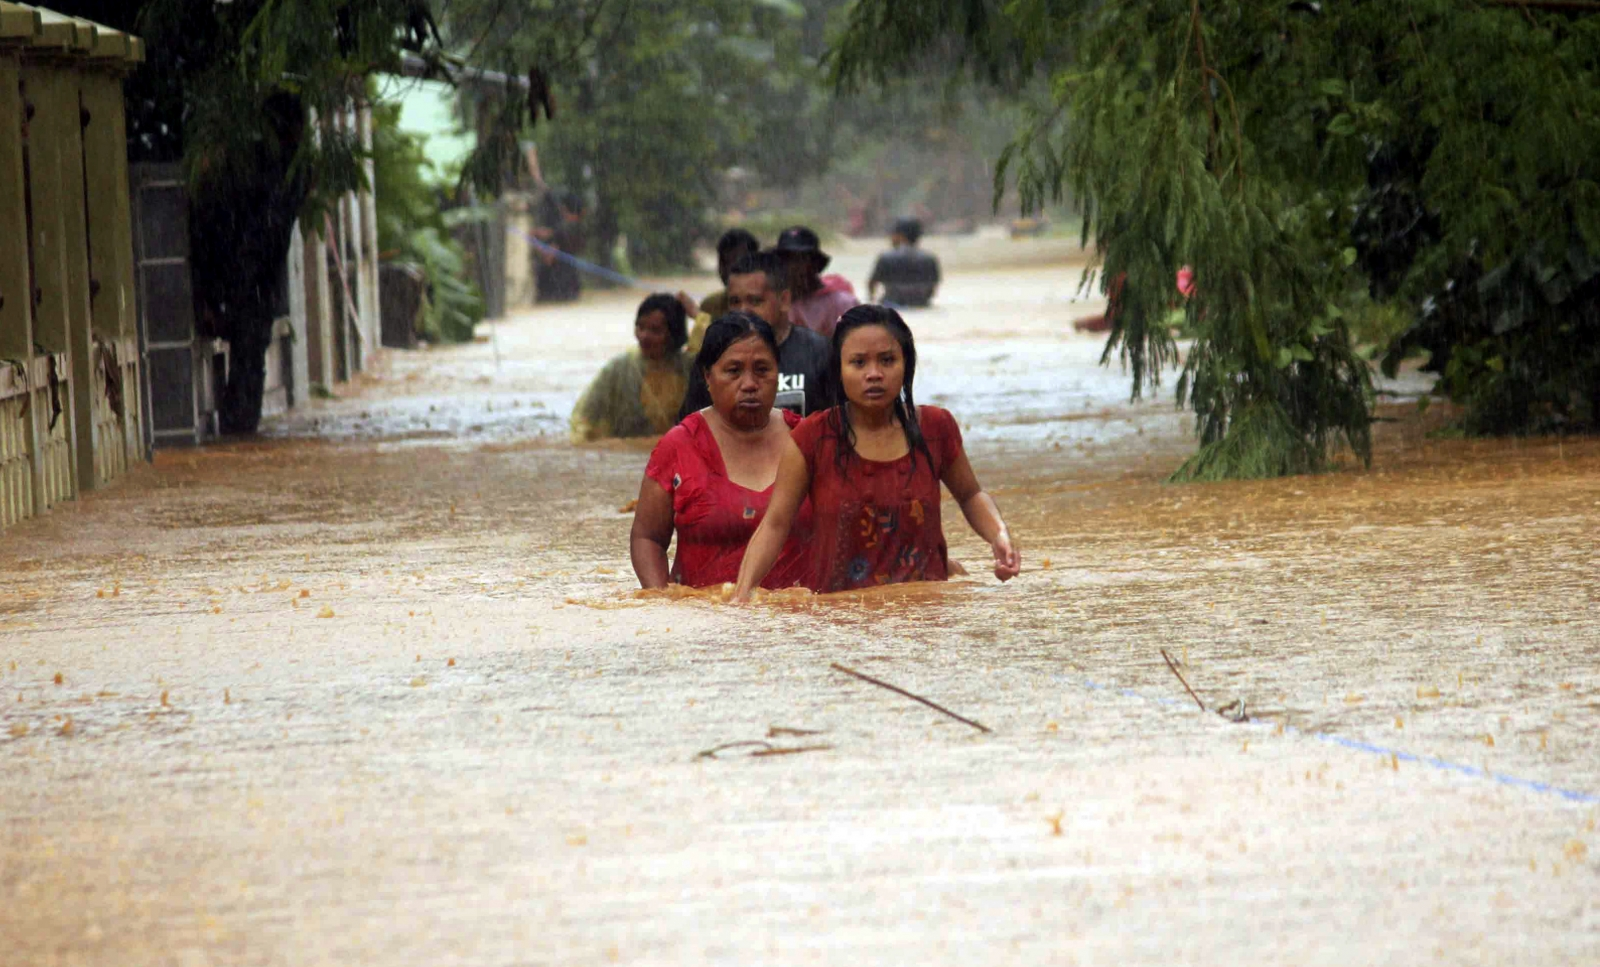 Residents walk through a flooded village in Indonesia